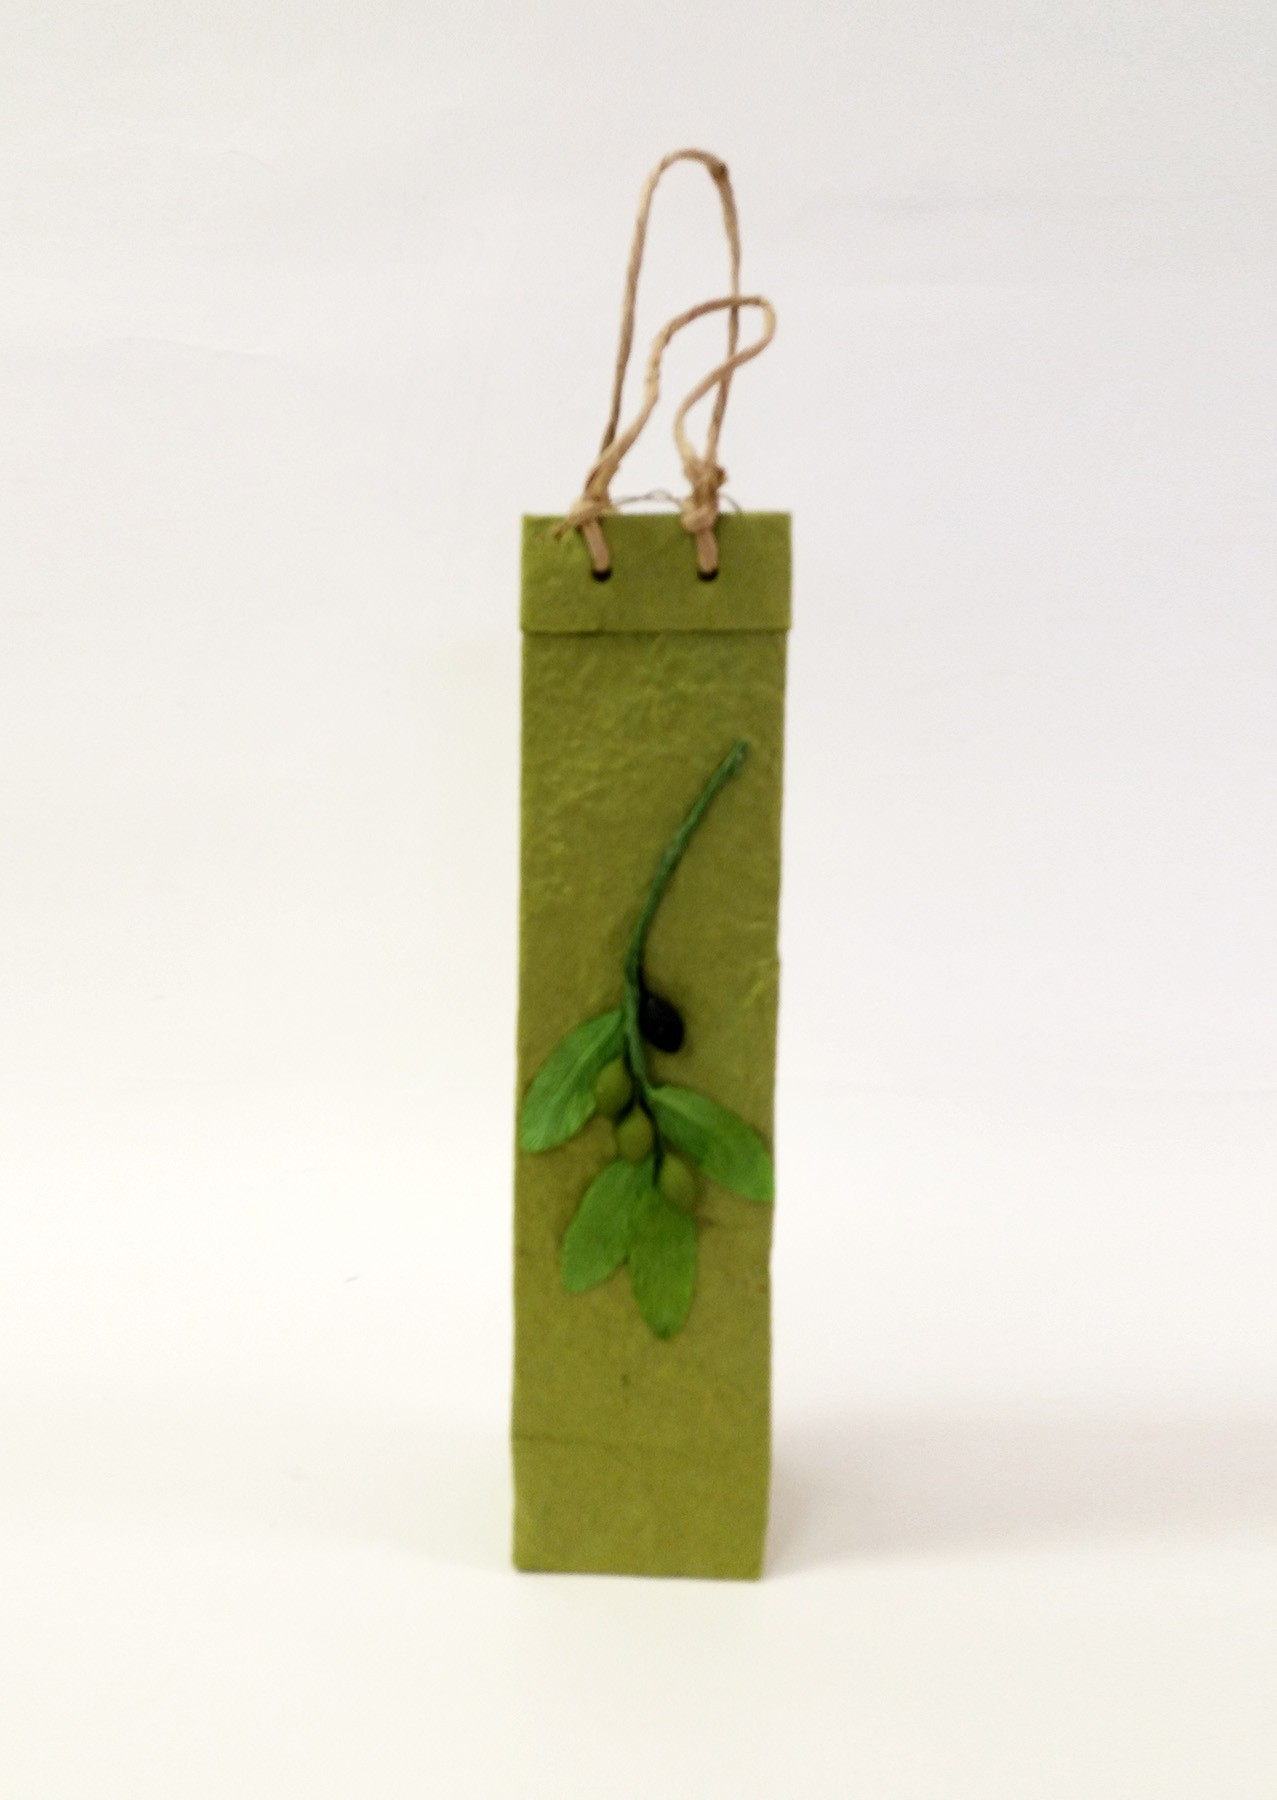 One-Bottle Olive Branch Gift Bag in Green